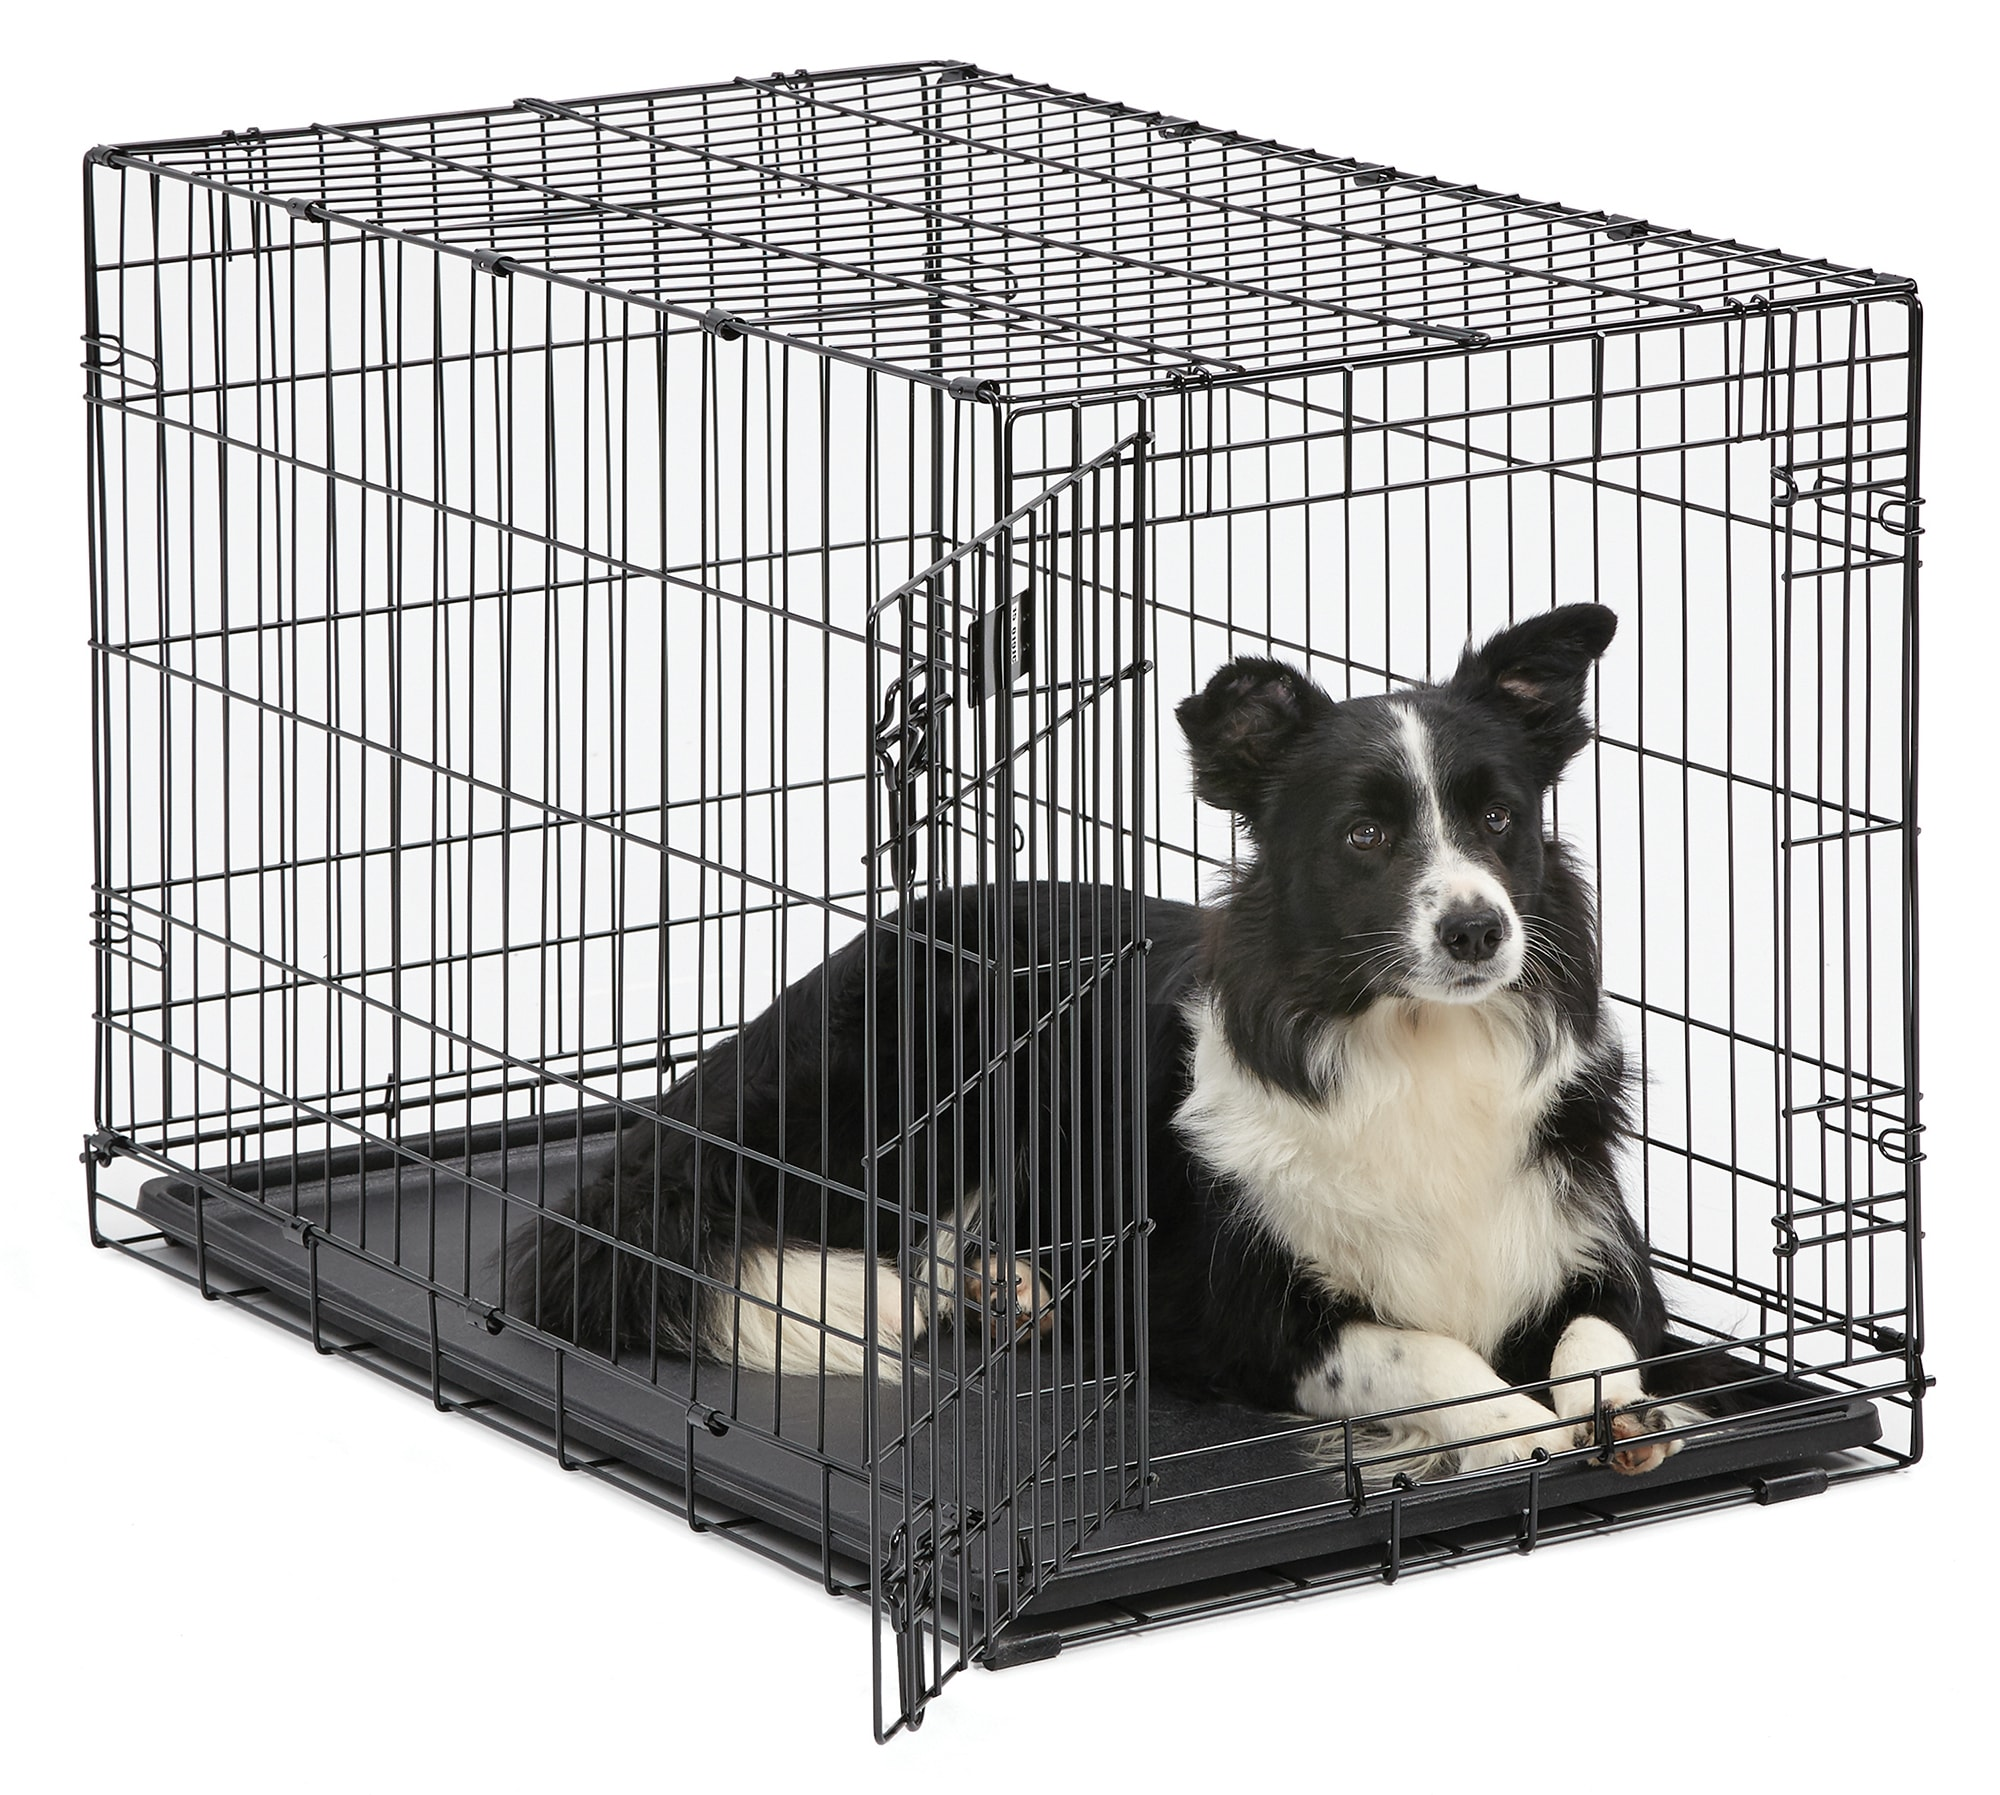 Midwest Icrate Single Door Folding Dog Crate 36 L X 23 W X 25 H Petco